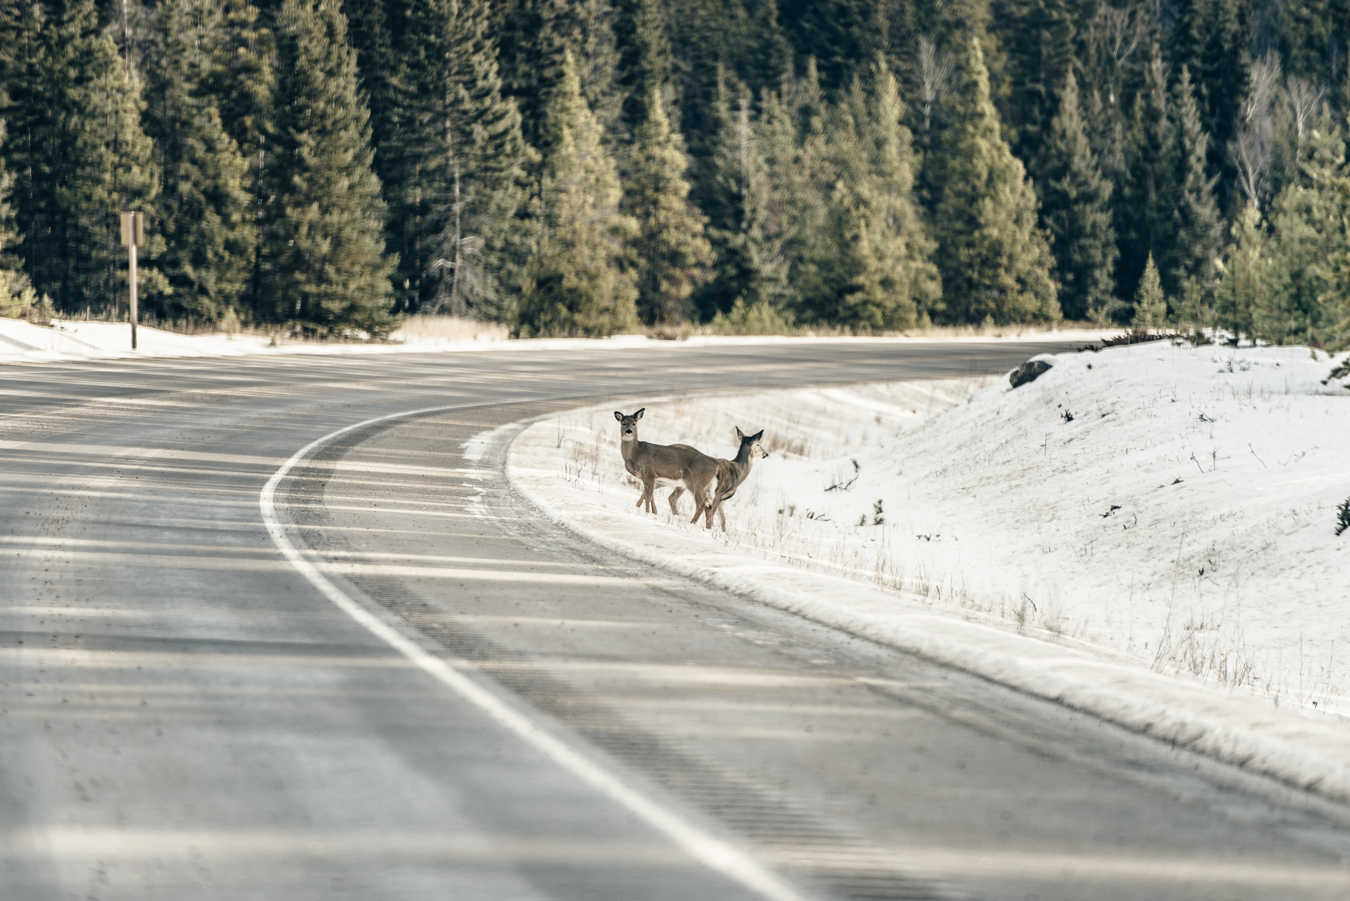 icefields-parkway-christian-frumolt-fotografie_web_small-56